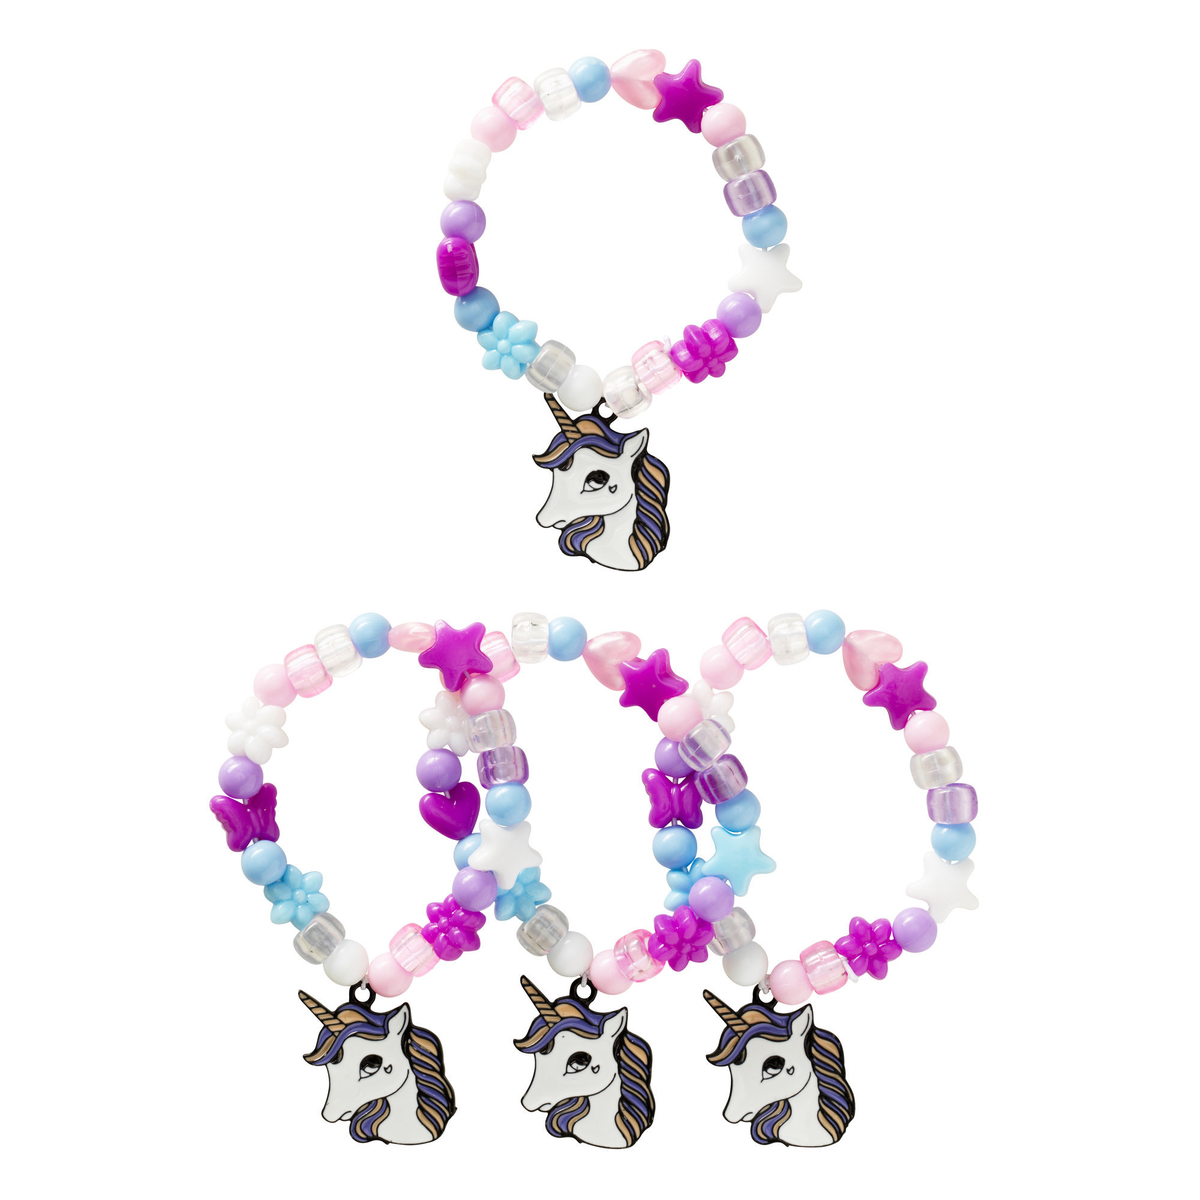 Unicorn Bracelets kit 4 st